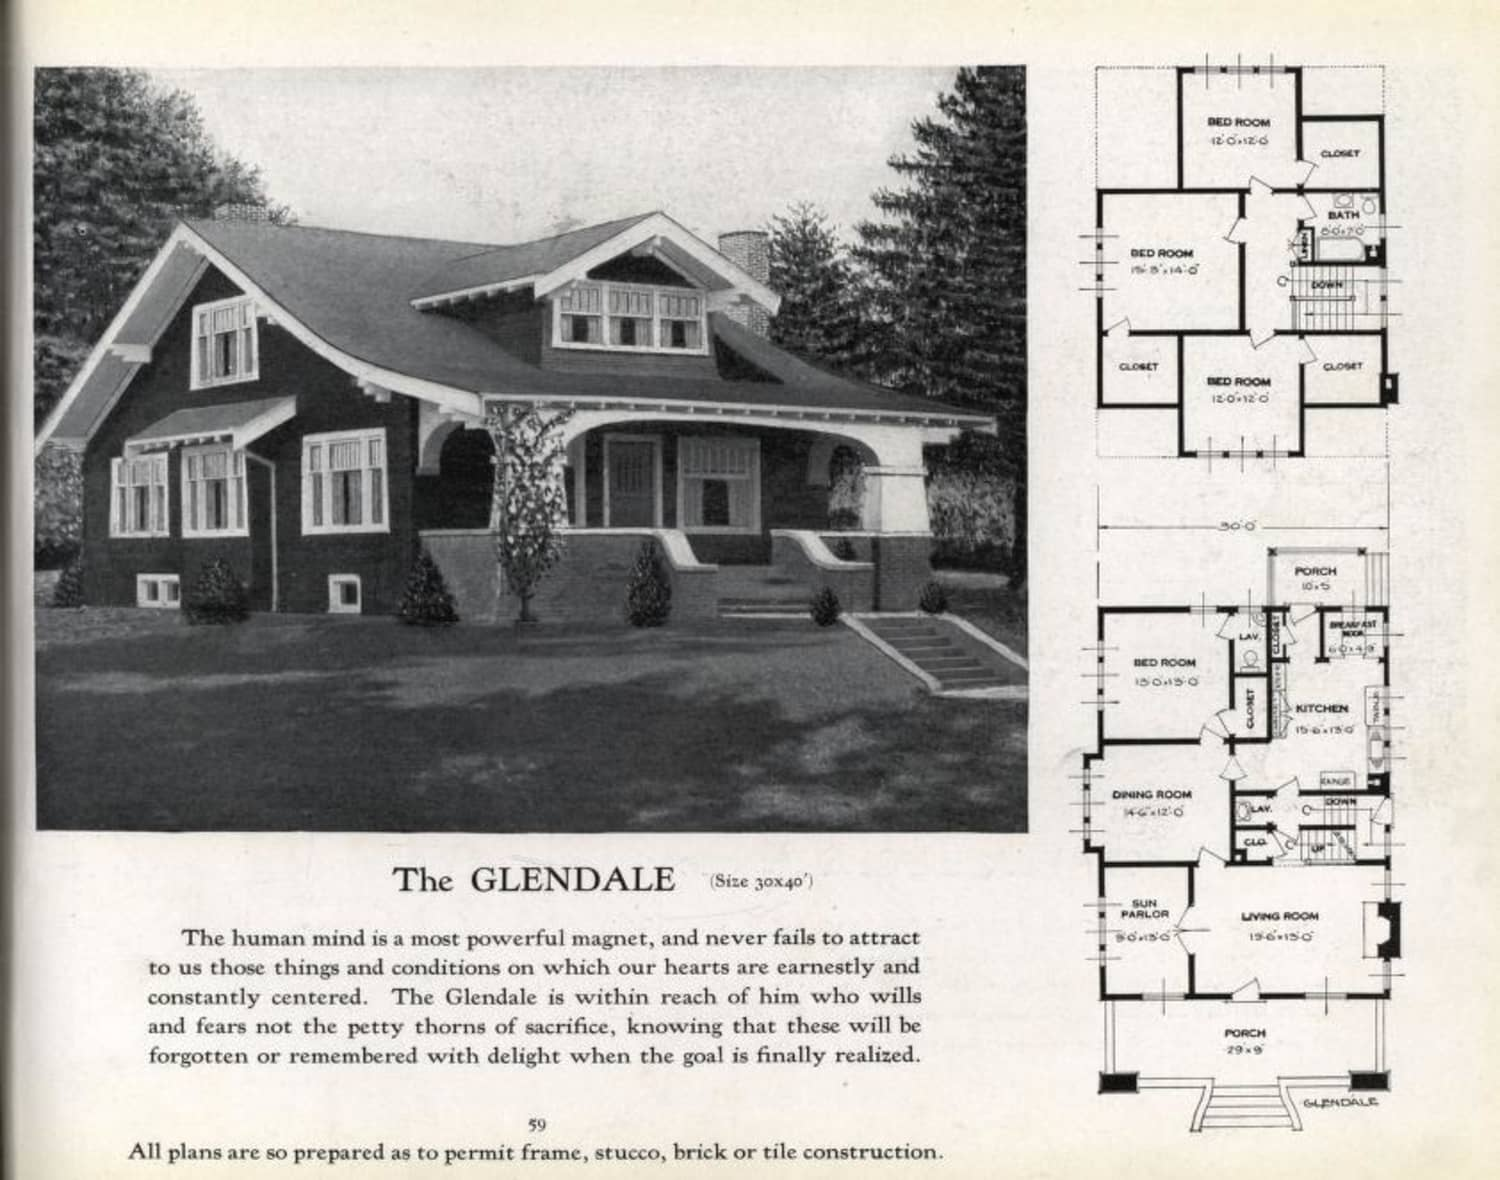 100 Years of Home Buying: Comparing 1920s Real Estate Listings to Today's